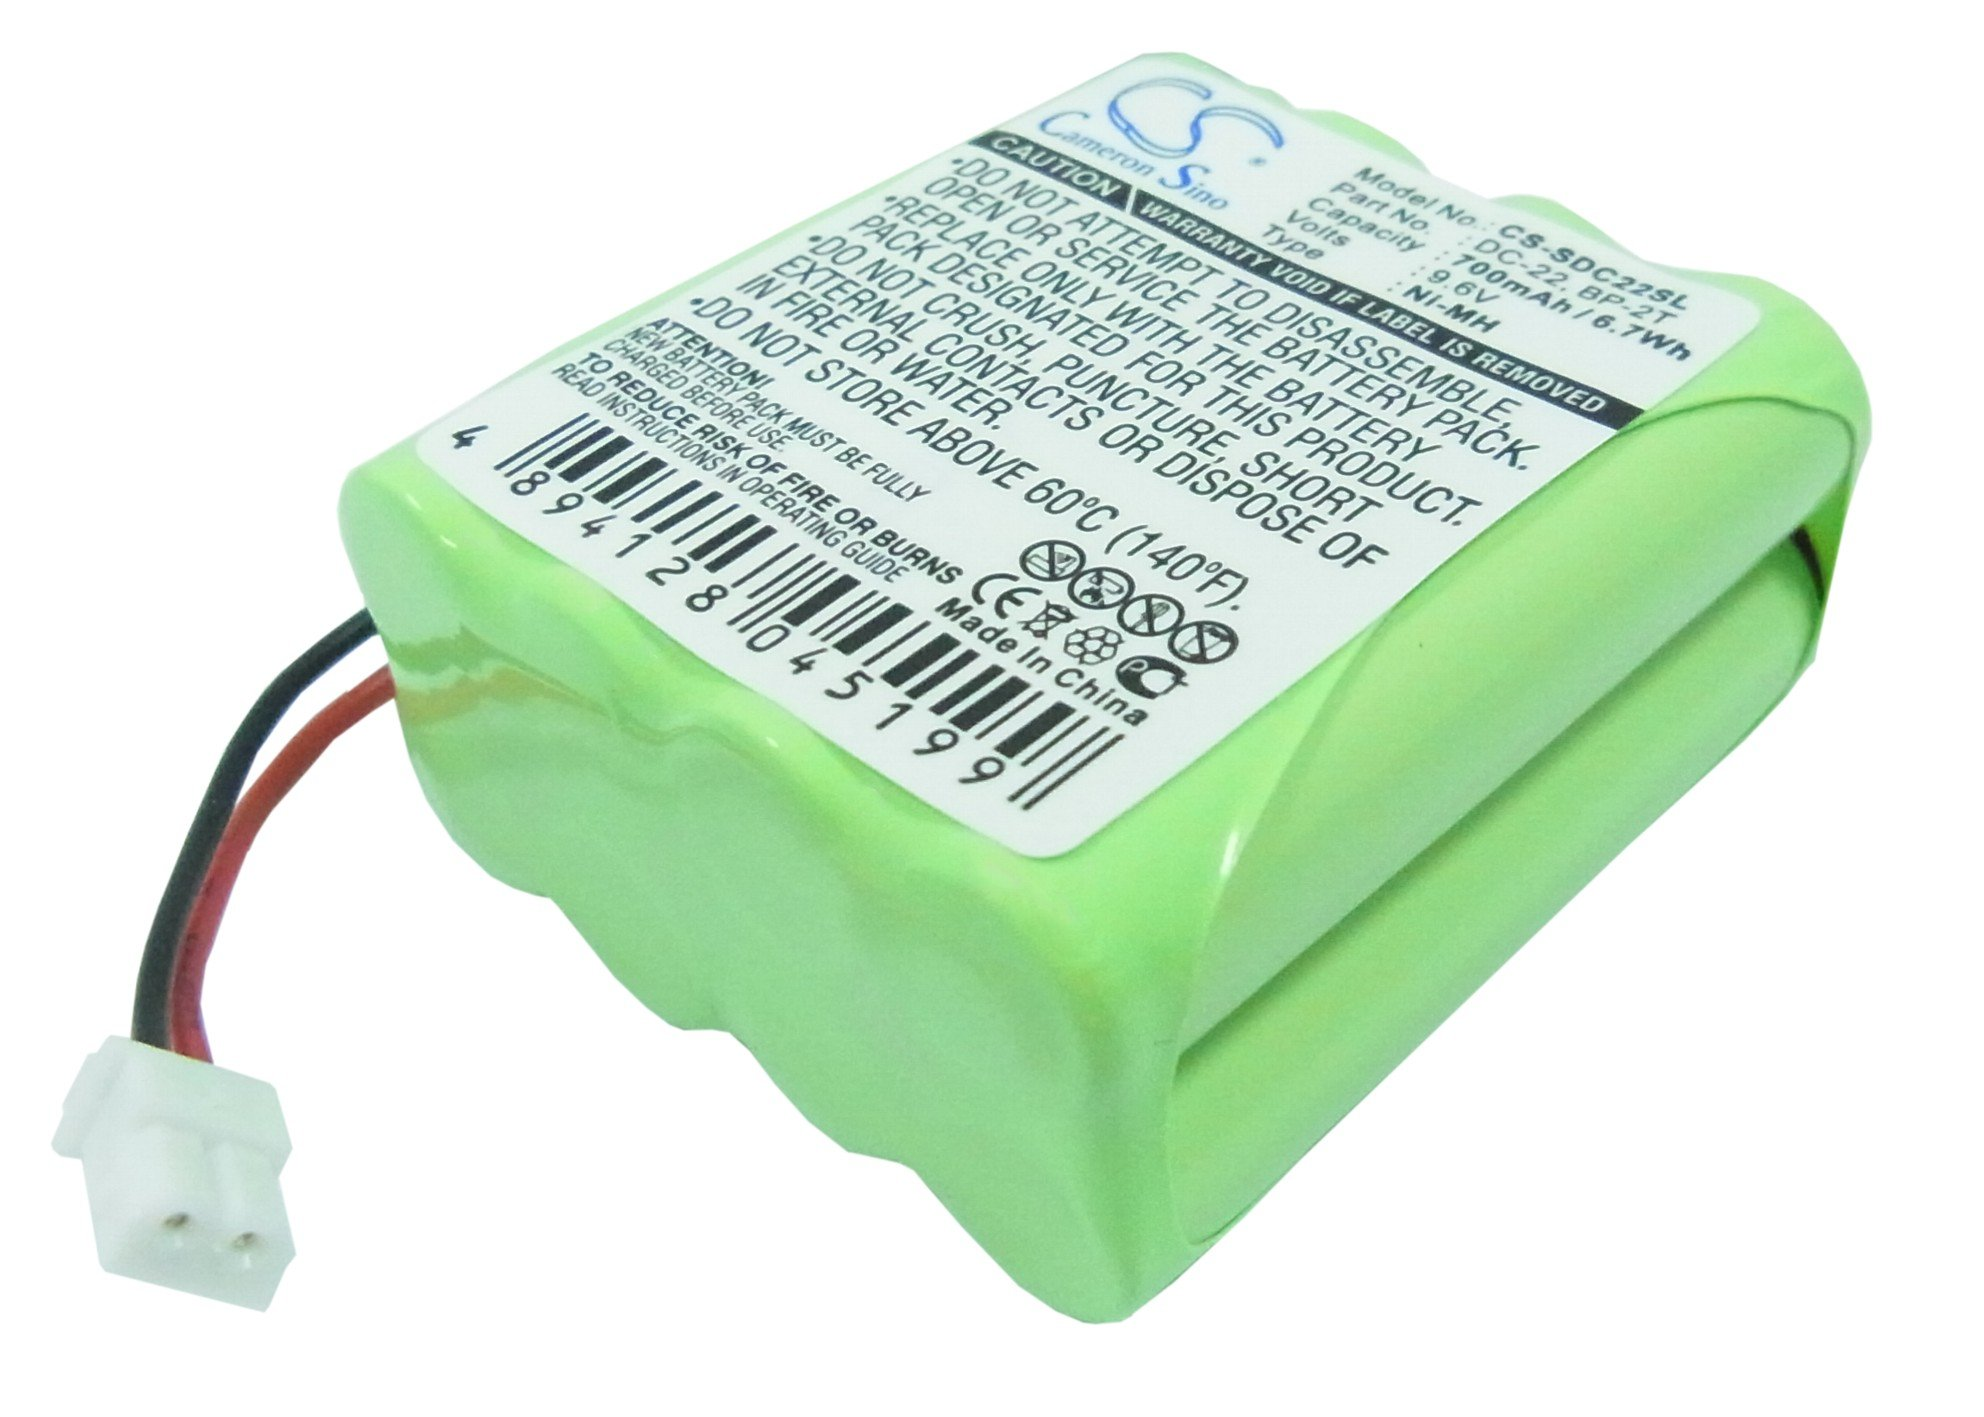 Battery Replacement for SPORTDOG Transmitter 2000NCP Transmitter 2000T Transmitter 2002B Transmitter 2002NC Transmitter 2002NCP Transmitter 2002T BP-2T by BCXY